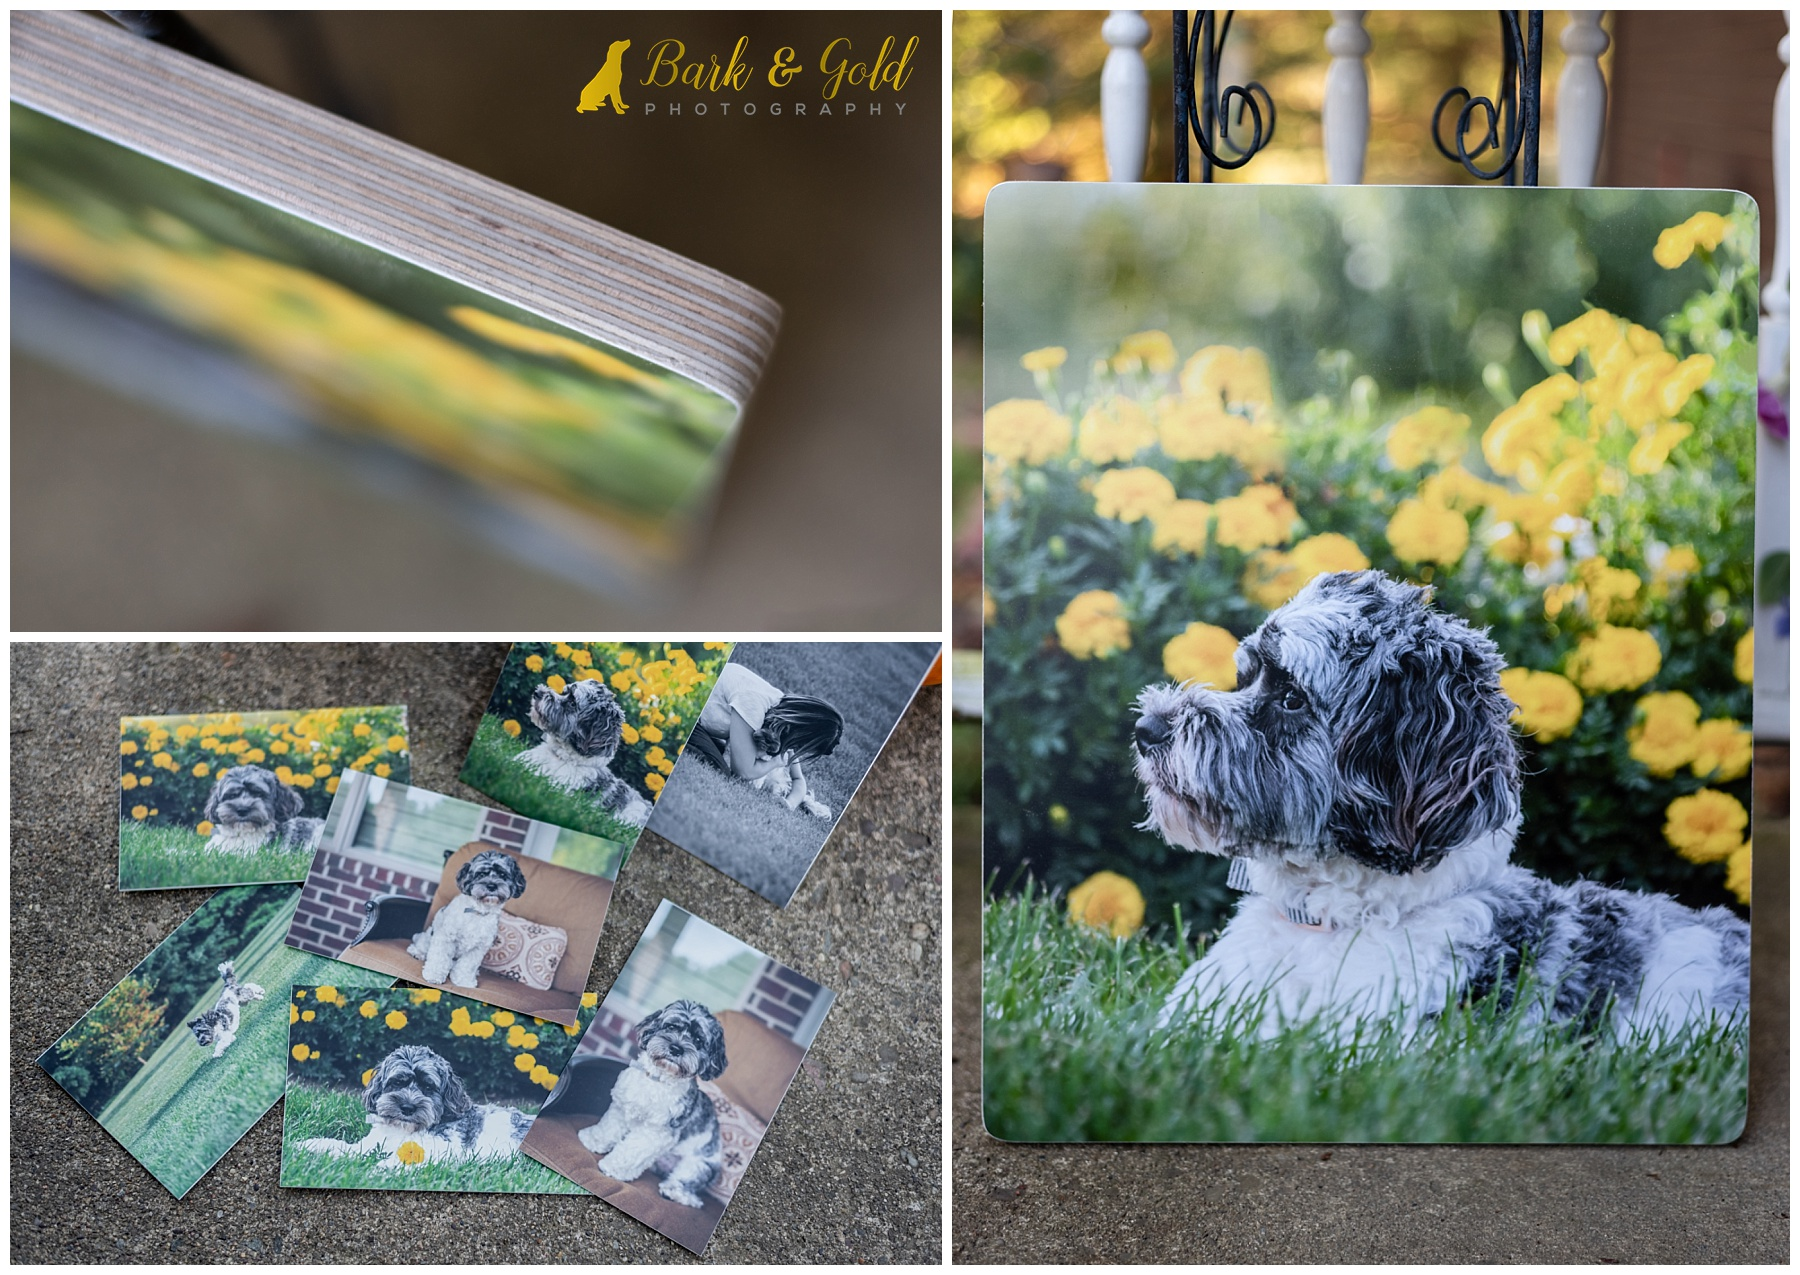 artisan wood and small gift prints of a Cavapoo puppy